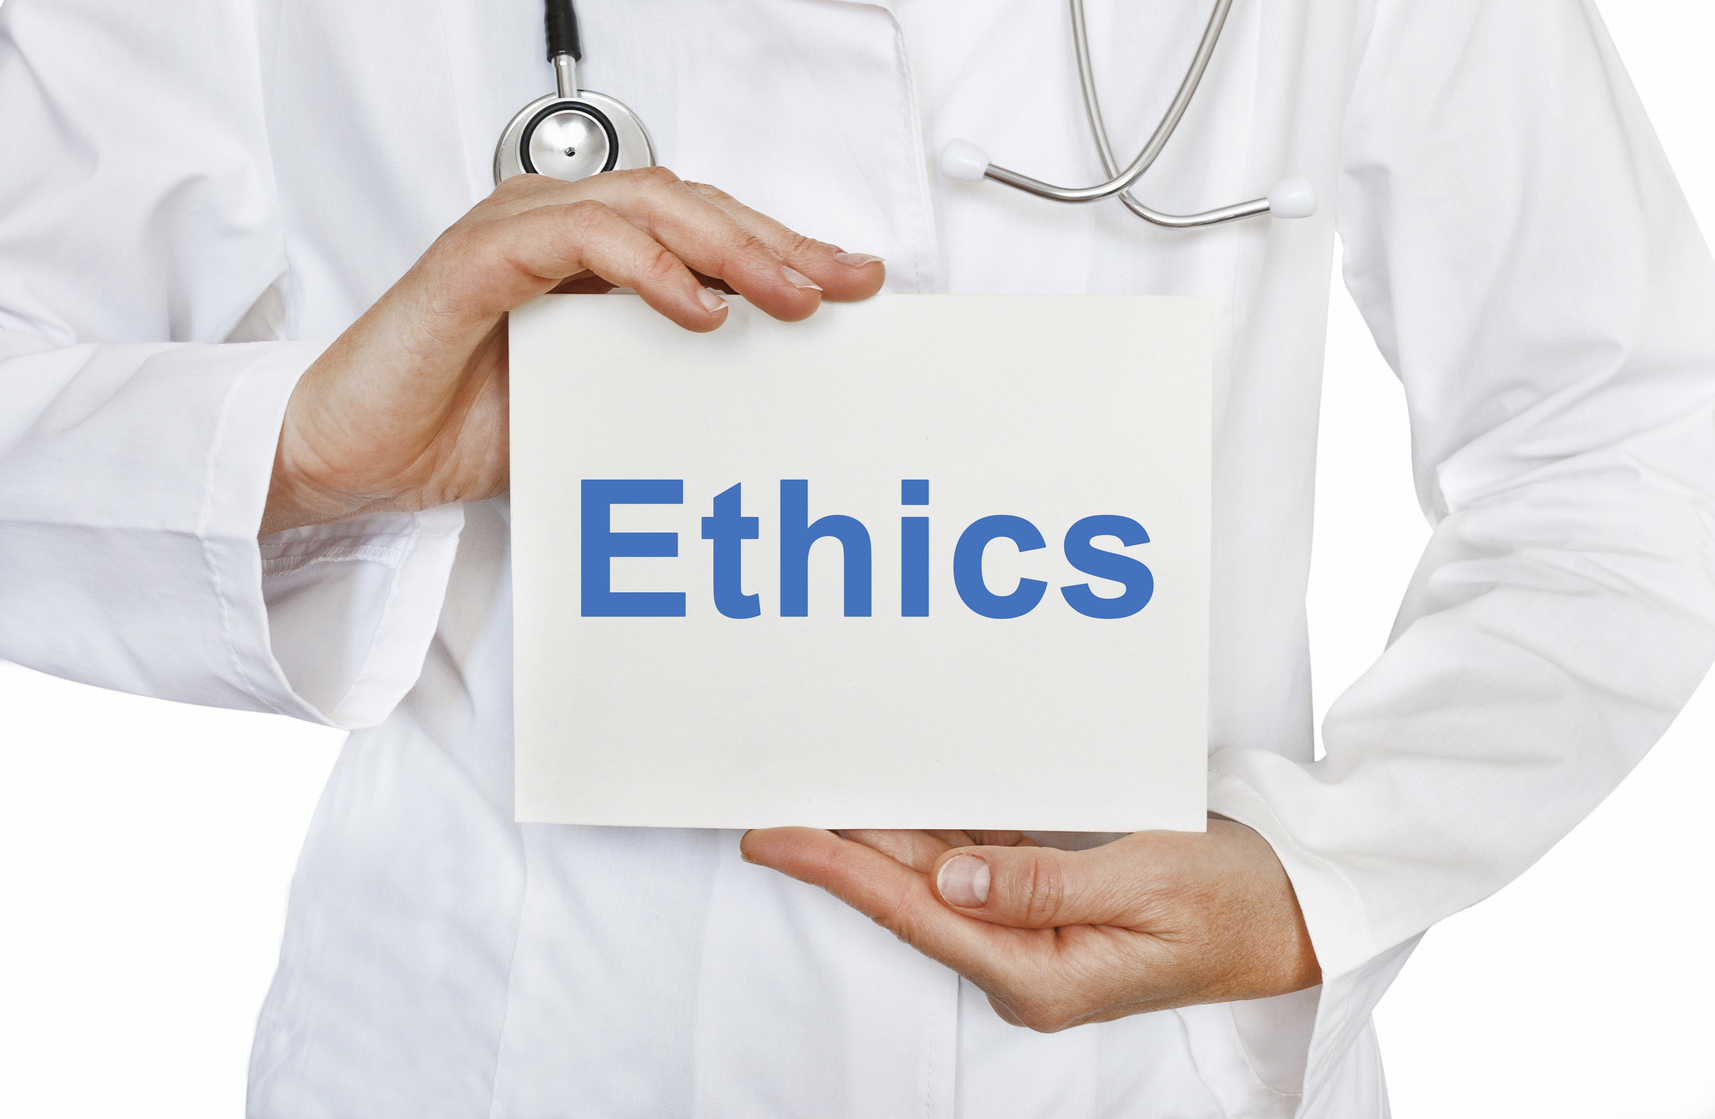 business ethics within today Business ethics and social responsibility  what becomes an ethical guideline today is often translated to a law, regulation or rule tomorrow  business ethics .